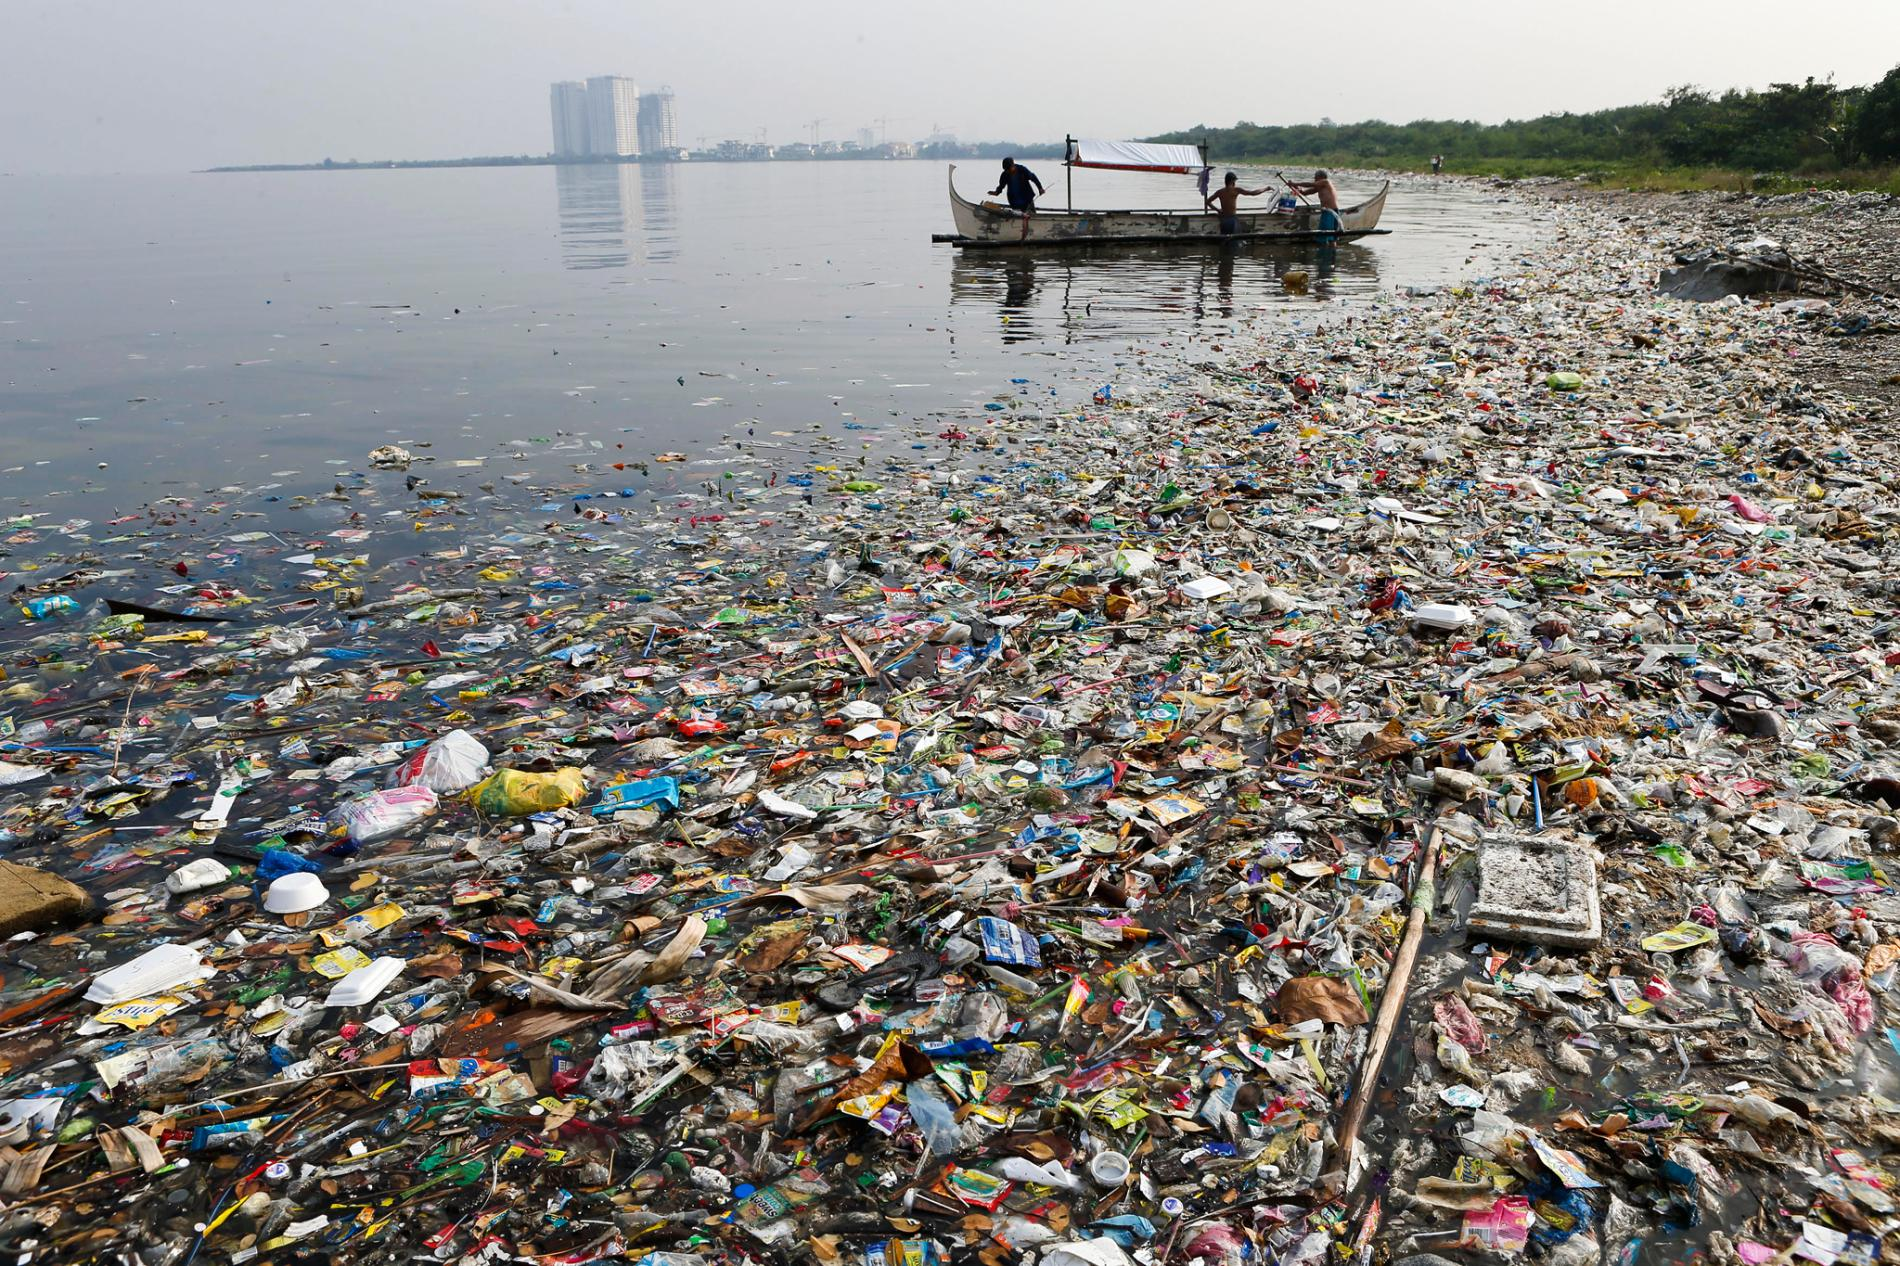 15 Shocking Facts About Ocean Pollution